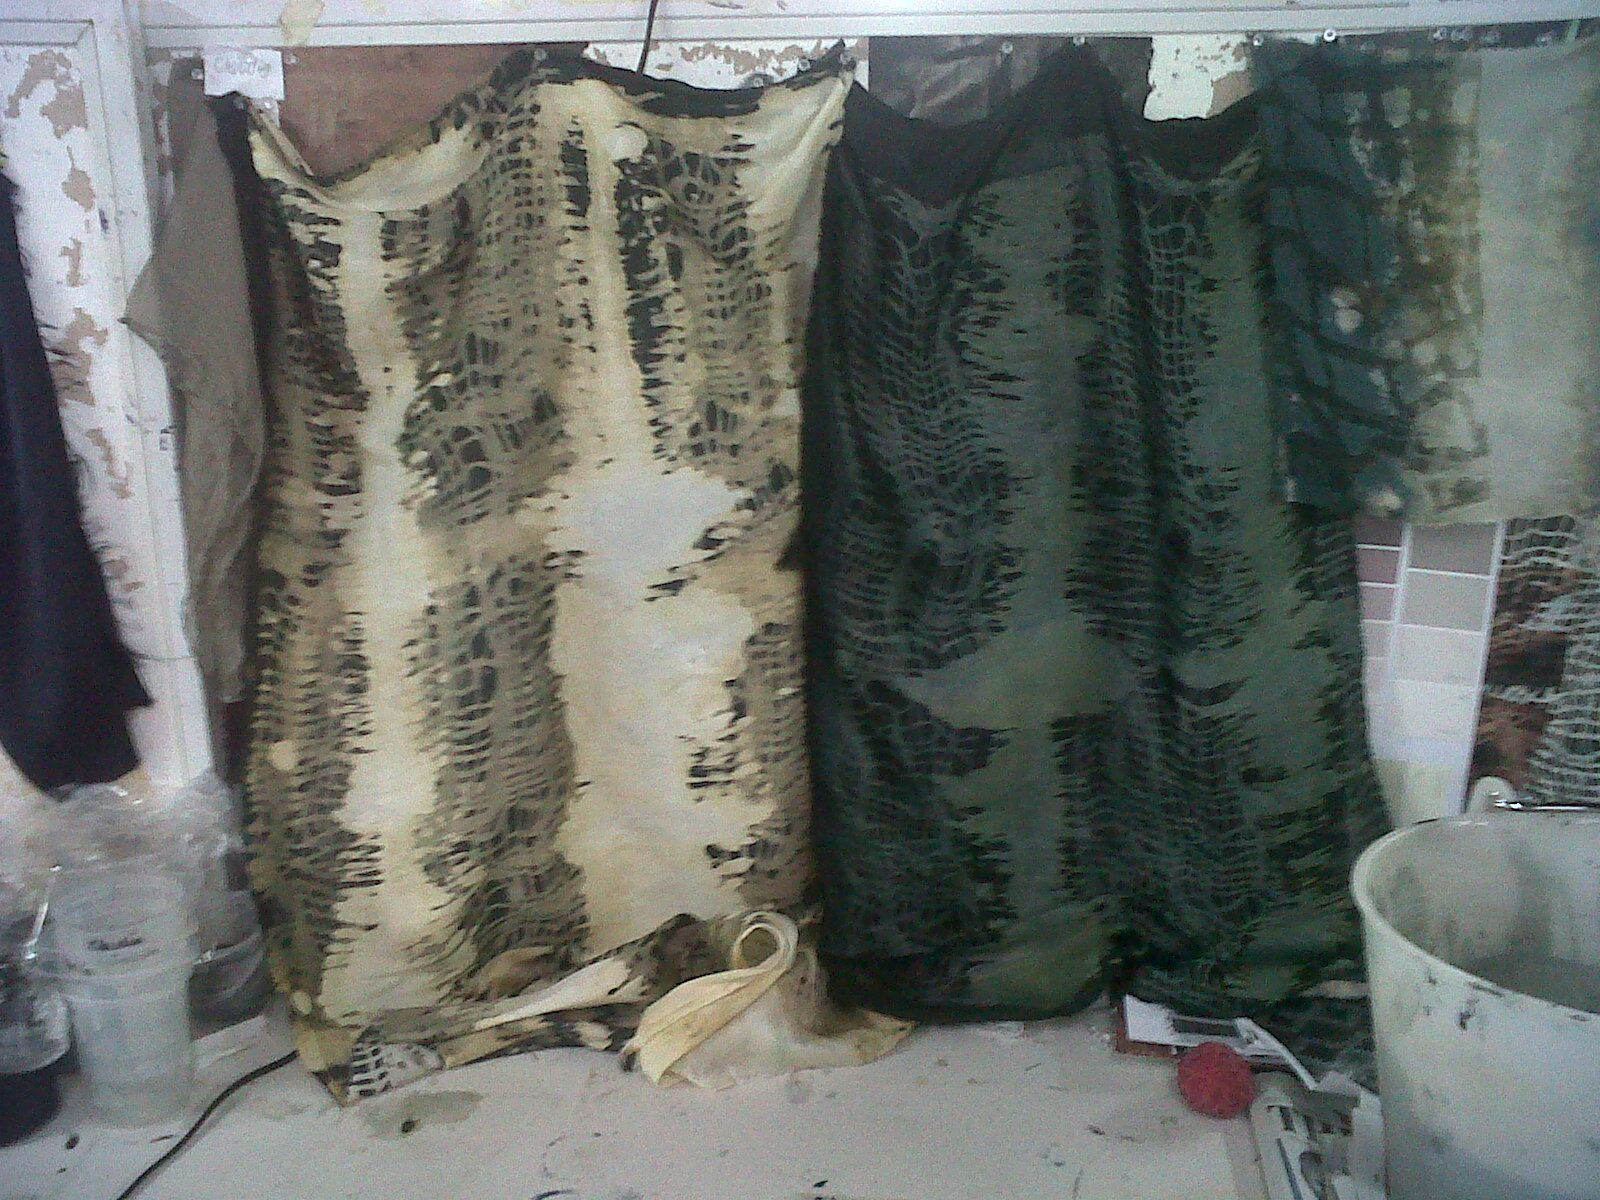 Hand printed textiles by myself, using screens and discharge to create a decomposing affect